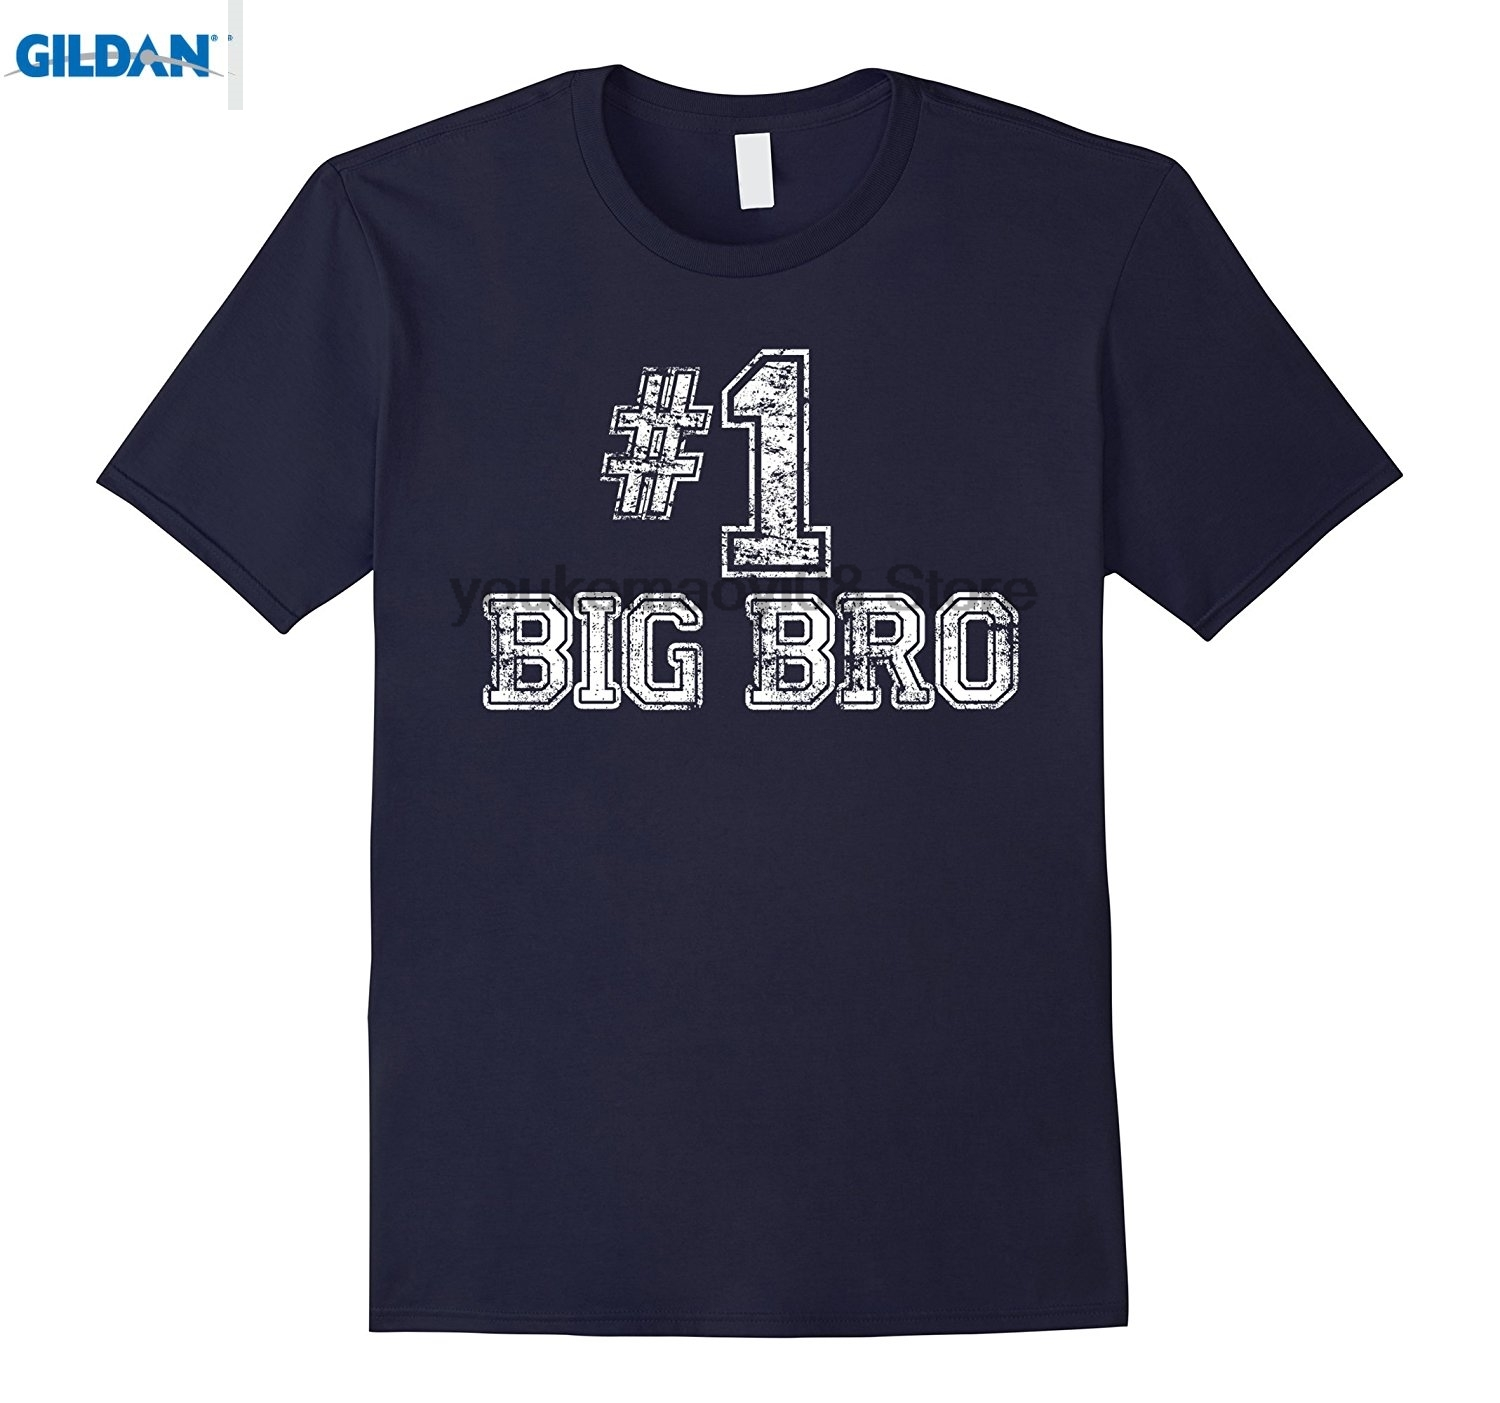 GILDAN 100% cotton o-neck custom printed T shirt 1 Big Bro T Shirt Number One Fathers Day Gift Tee